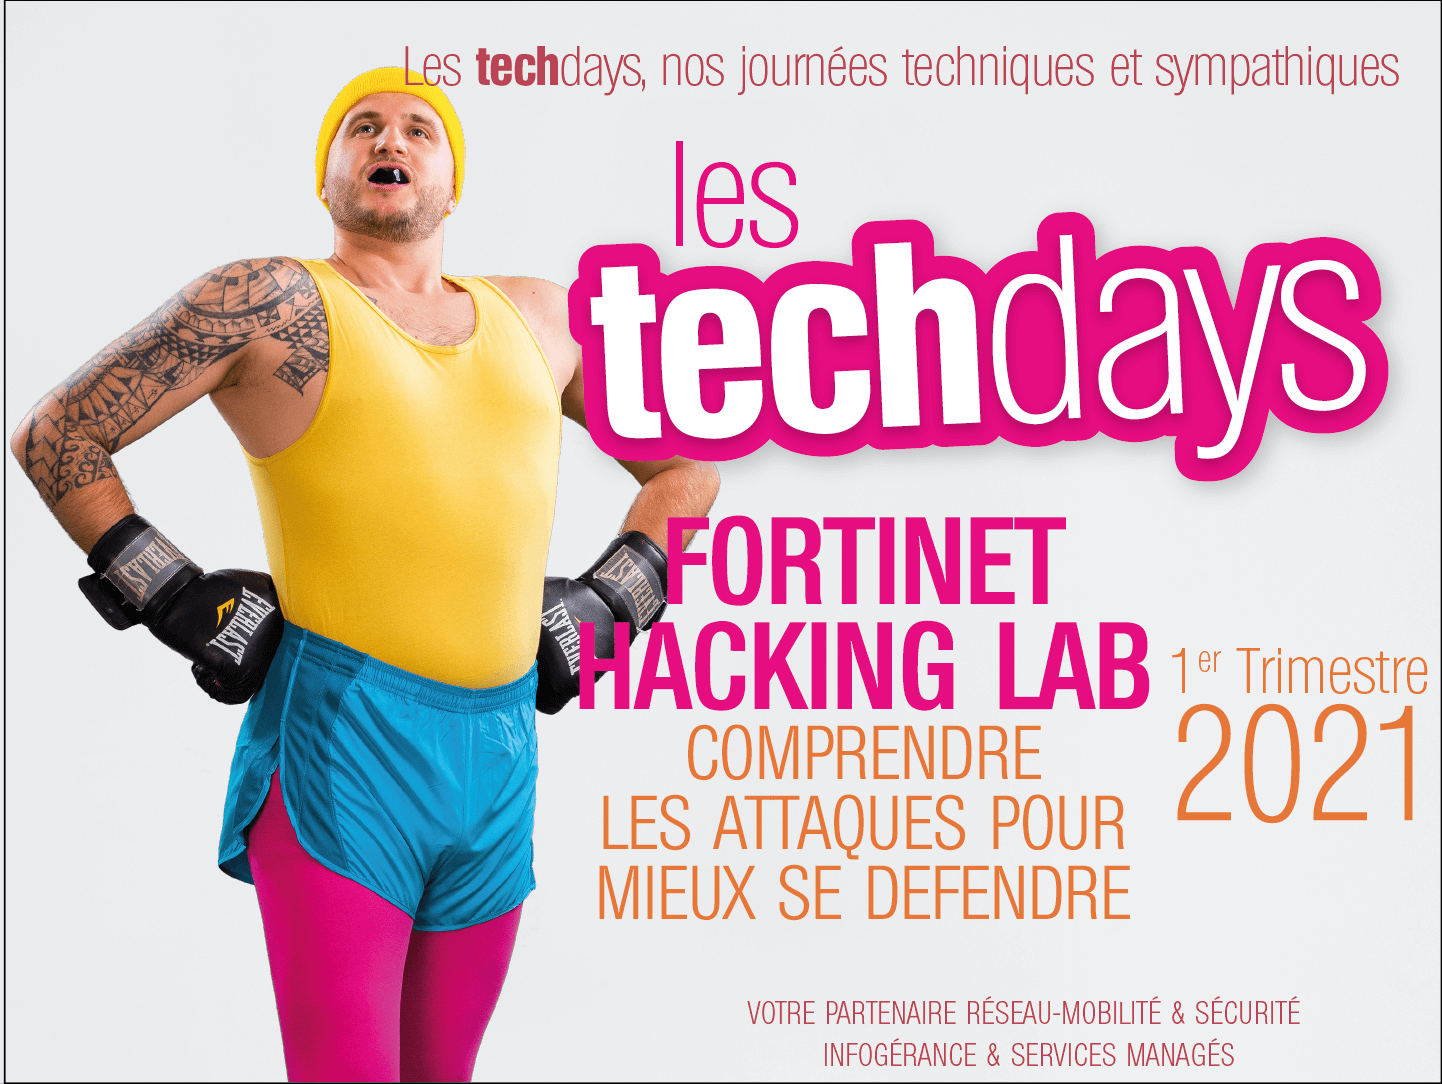 TechDays Fortinet Hacking Lab !